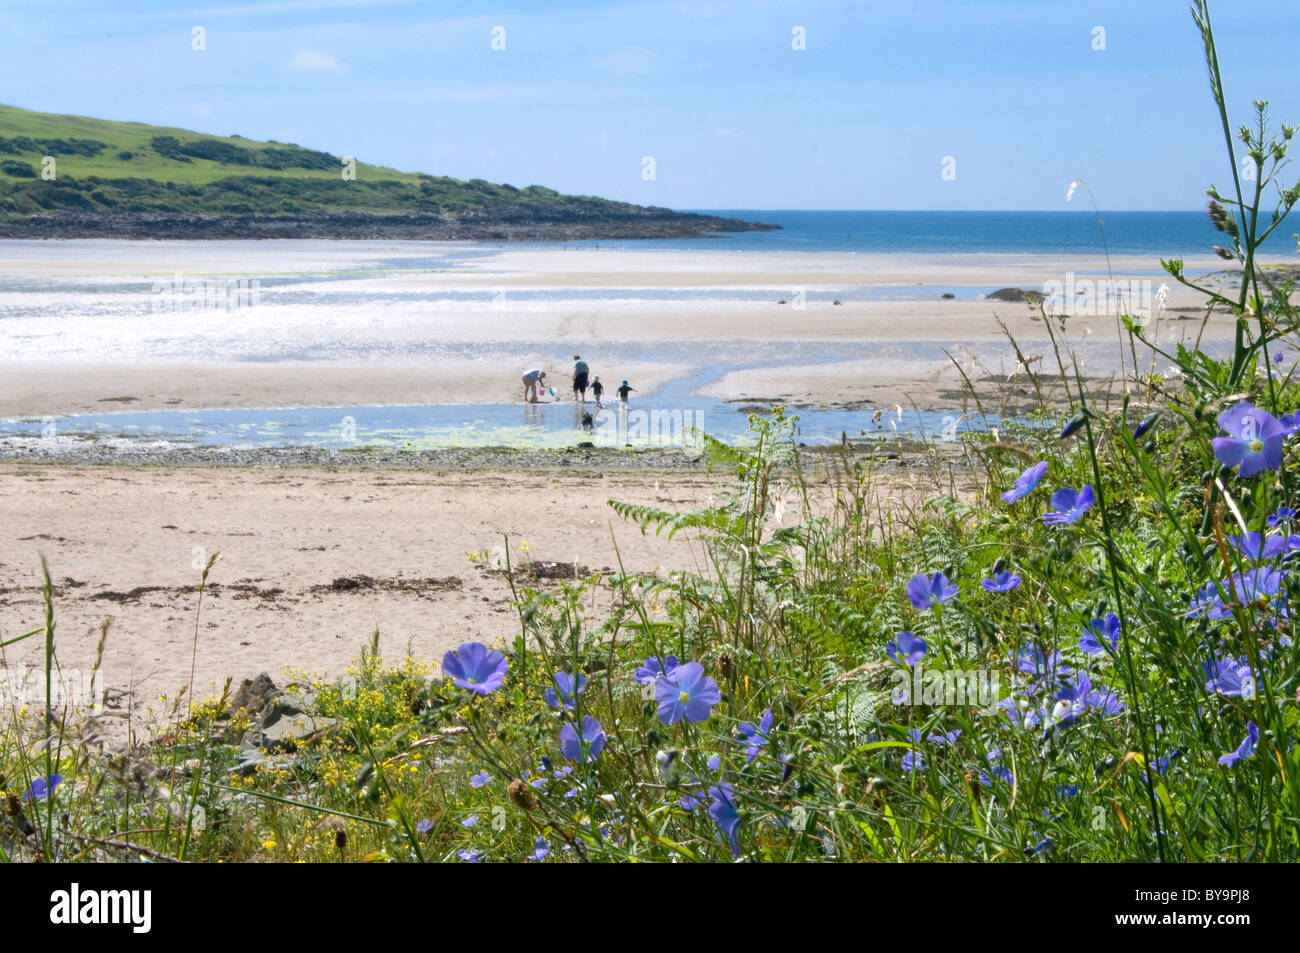 Family on beach at Brighouse Bay with rare blue flax in foreground - Stock Image